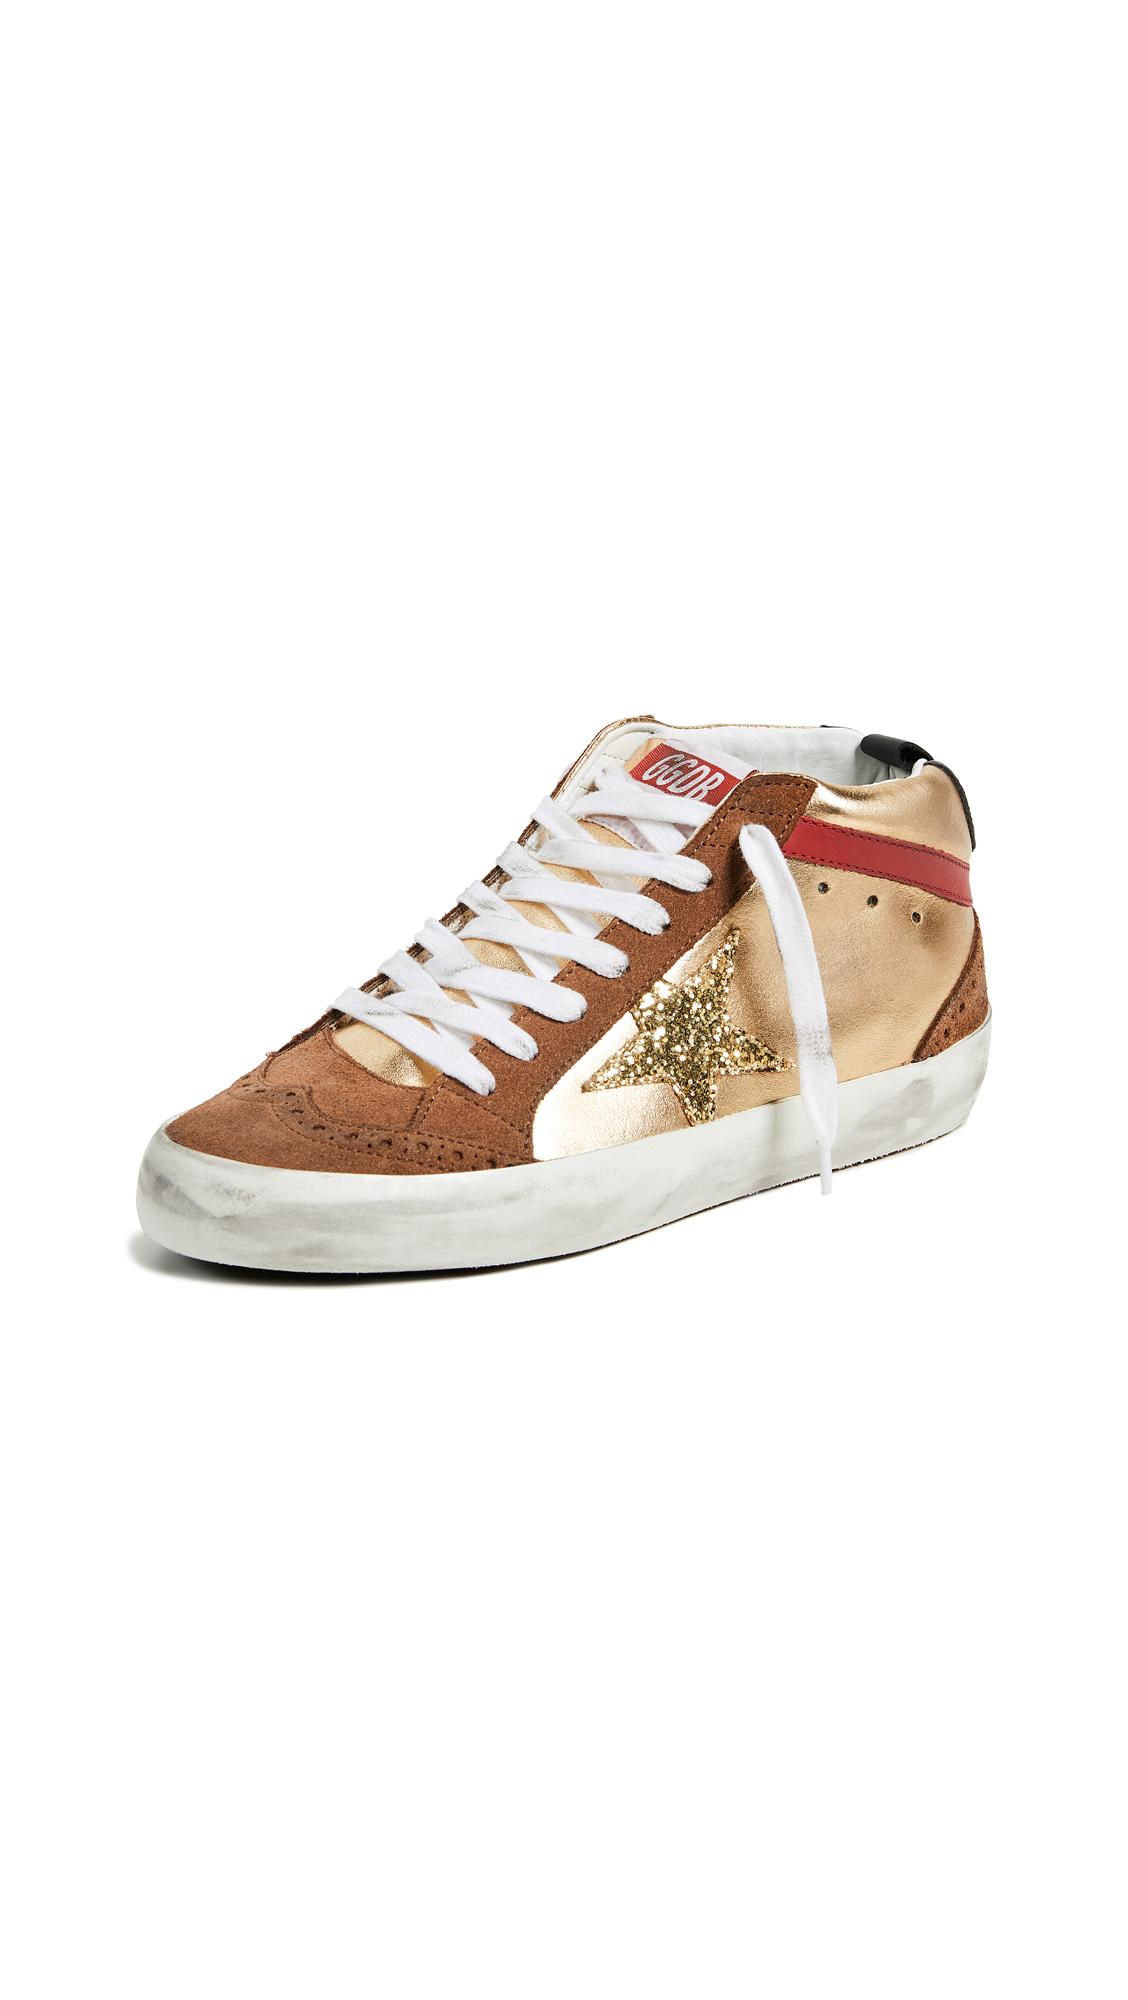 Golden Goose Leathers MID STAR SNEAKERS